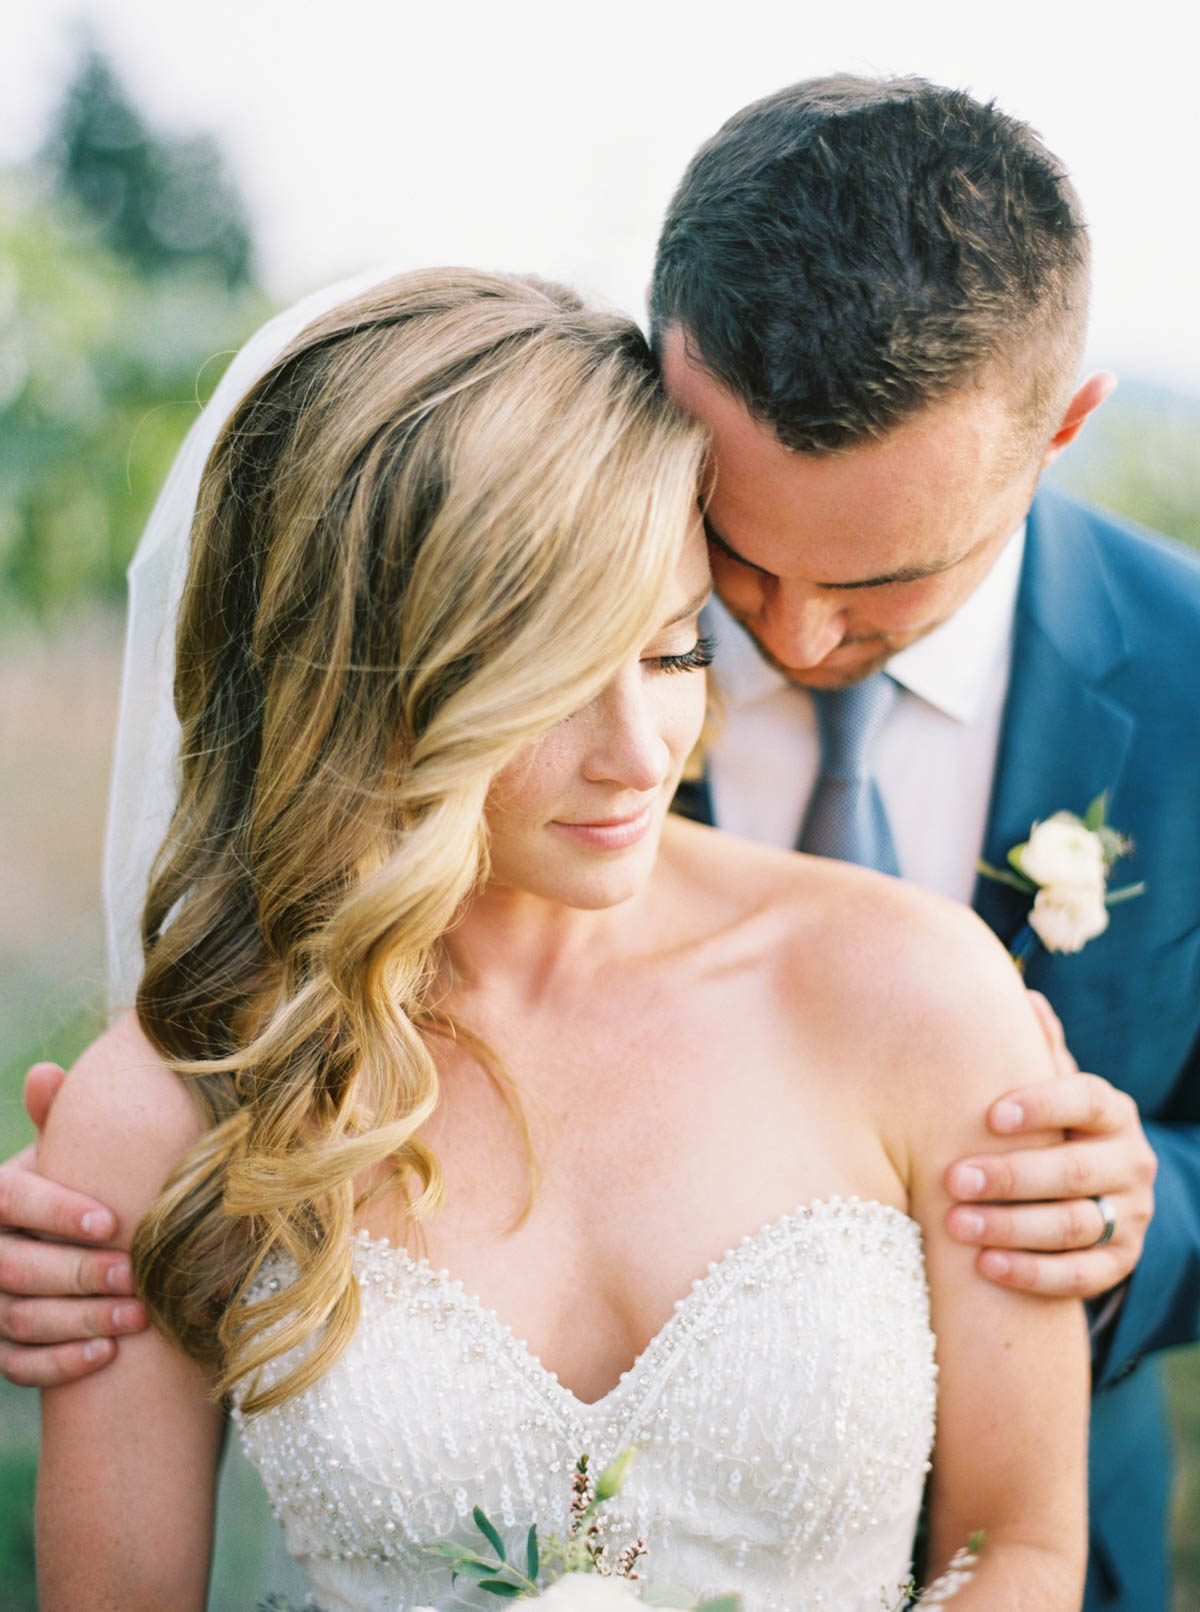 Romantic Winery Portraits at Arbor Crest by Seattle Wedding Photographer Anna Peters